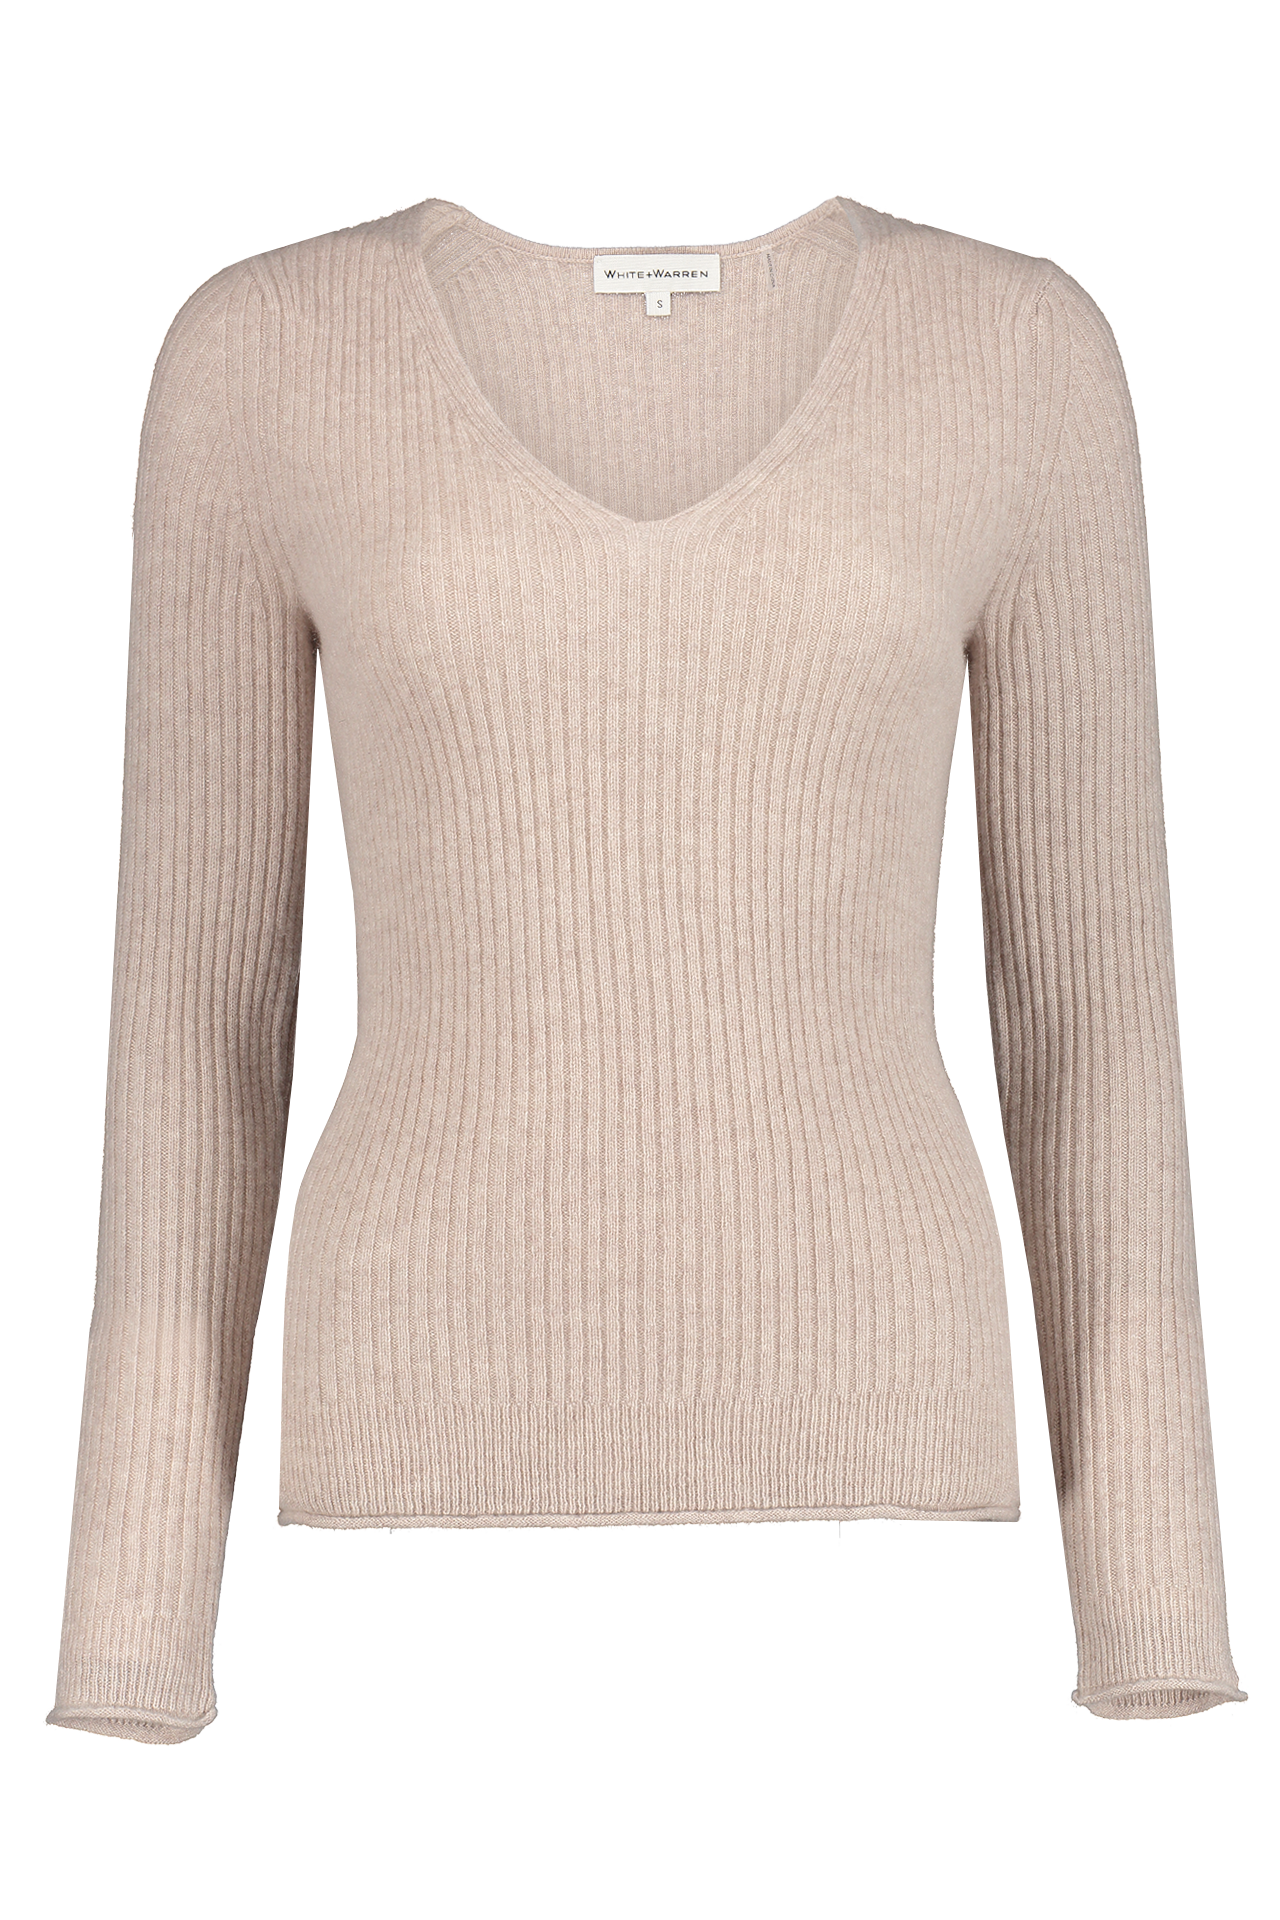 Front view image of White & Warren Slim Ribbed V Neck Sweater Truffle Heather